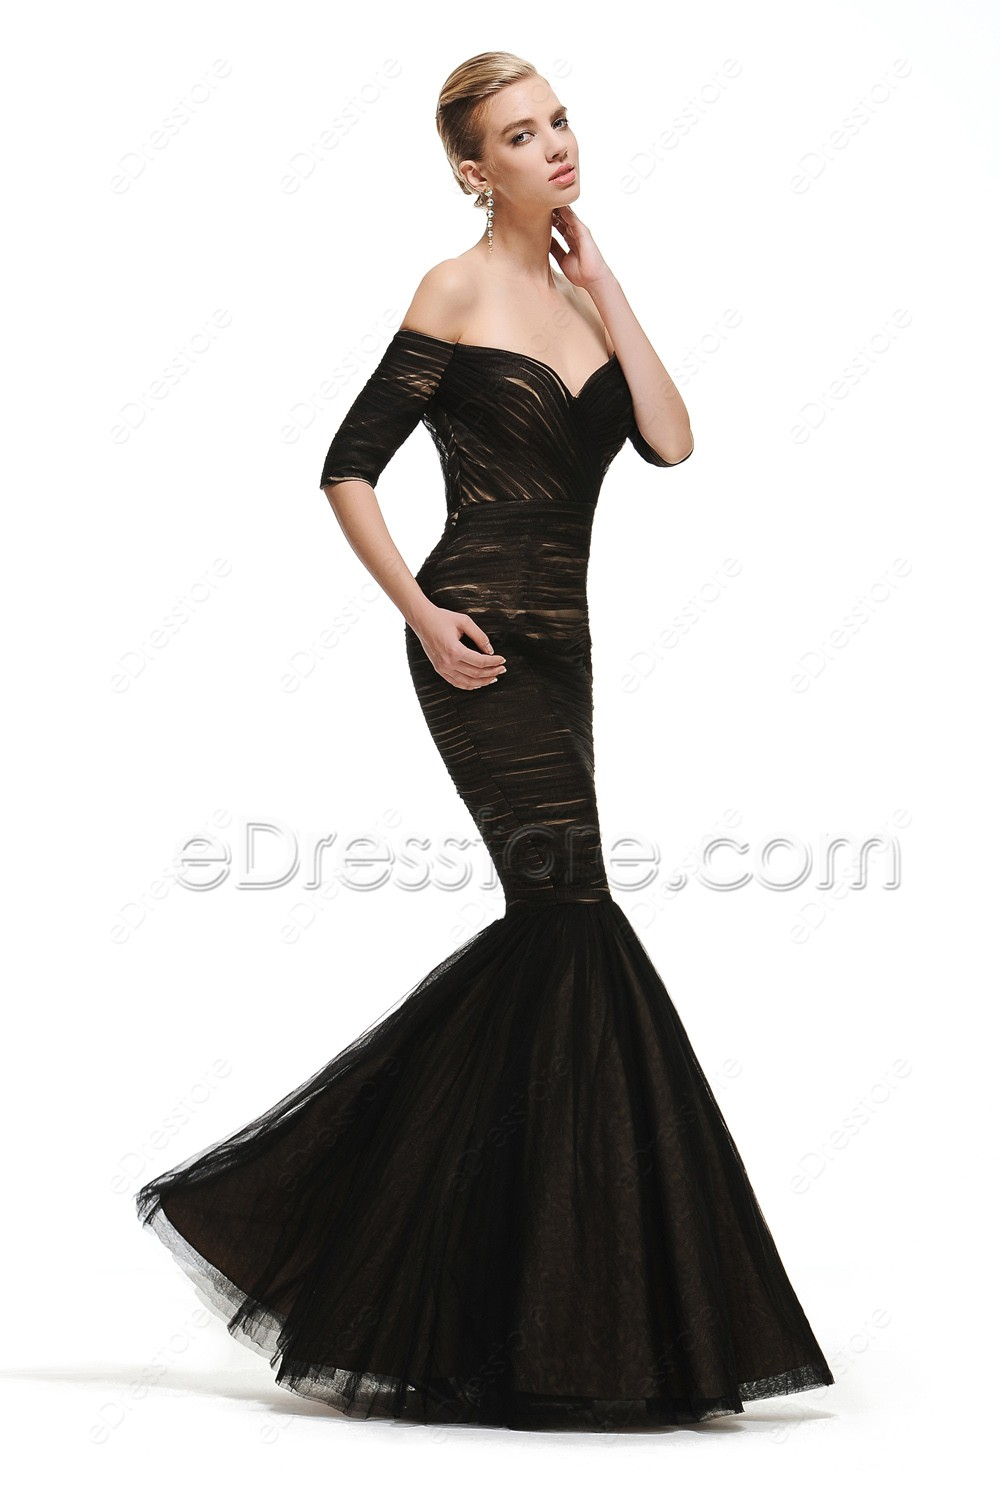 Off The Shoulder Mmermaid Black Vintage Prom Dress With